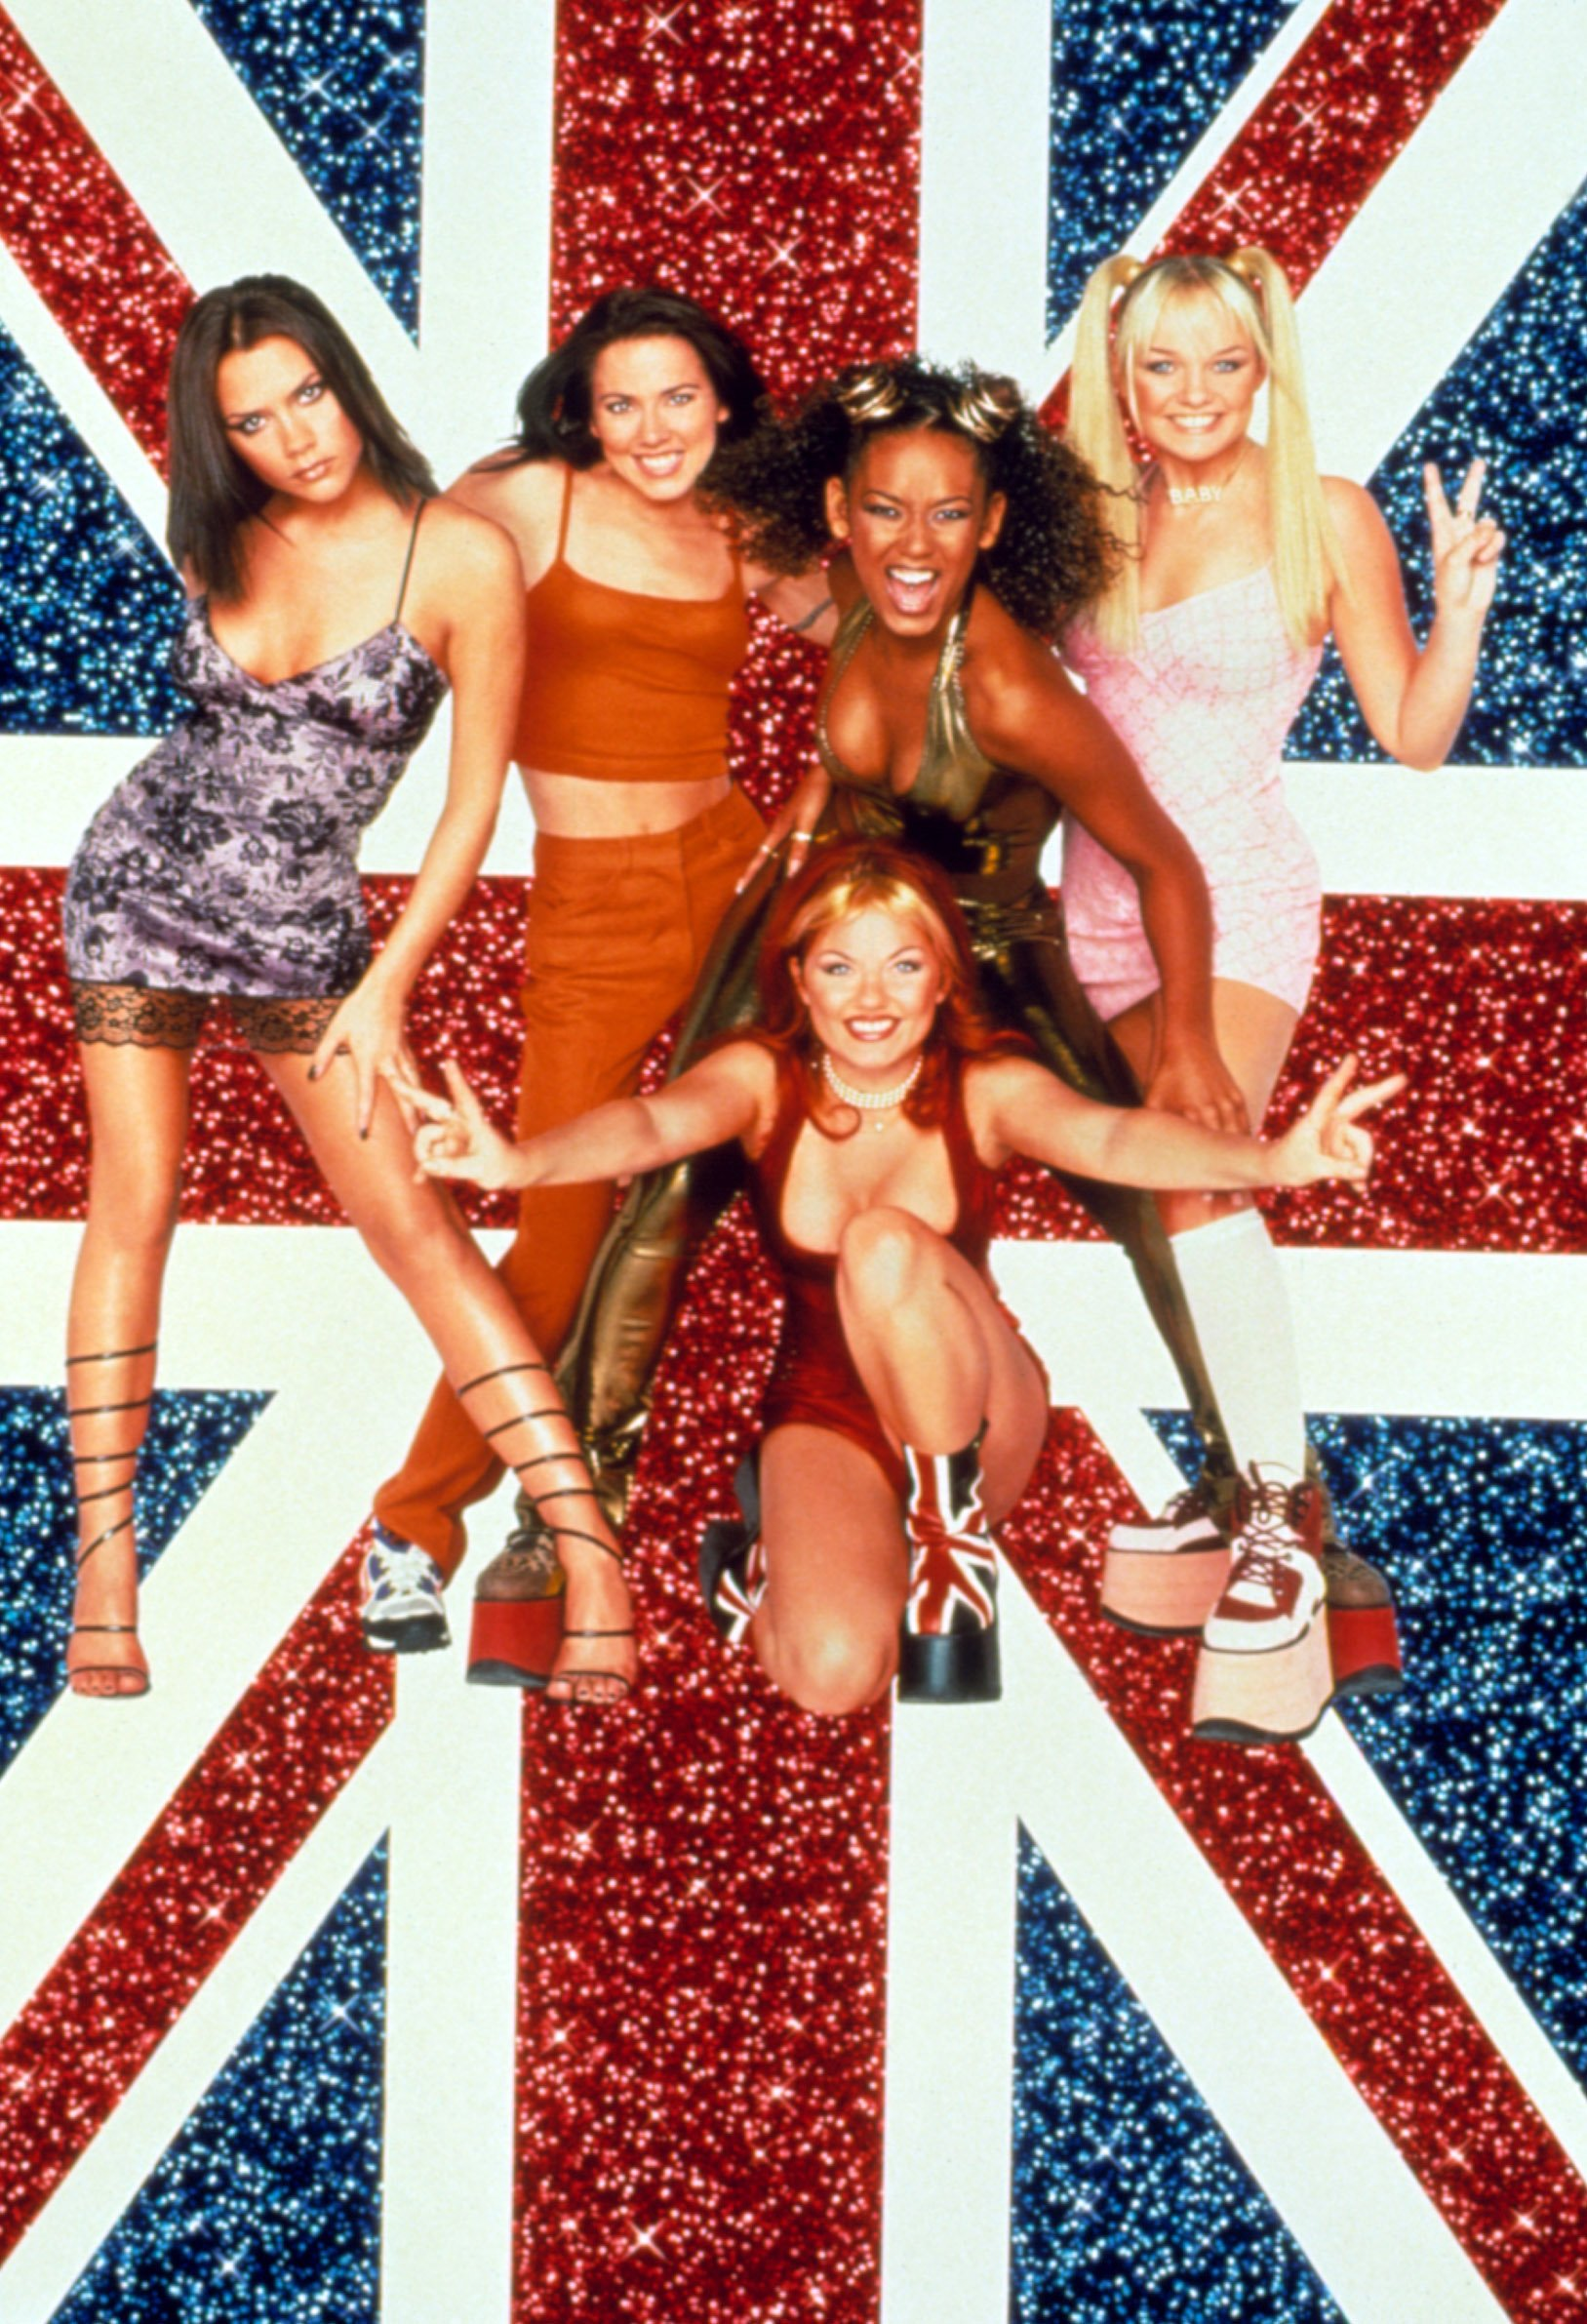 SPICE WORLD, Melanie Brown as Scary Spice, Emma Bunton as Baby Spice, Melanie Chisholm as Sporty Spice, Geri Halliwell as Ginger Spice, Victoria Beckham as Posh Spice, 1997, (c)Columbia Pictures/courtesy Everett Collection, Image: 98185023, License: Rights-managed, Restrictions: For usage credit please use; ©Columbia Pictures/Courtesy Everett Collection, Model Release: no, Credit line: Profimedia, Everett